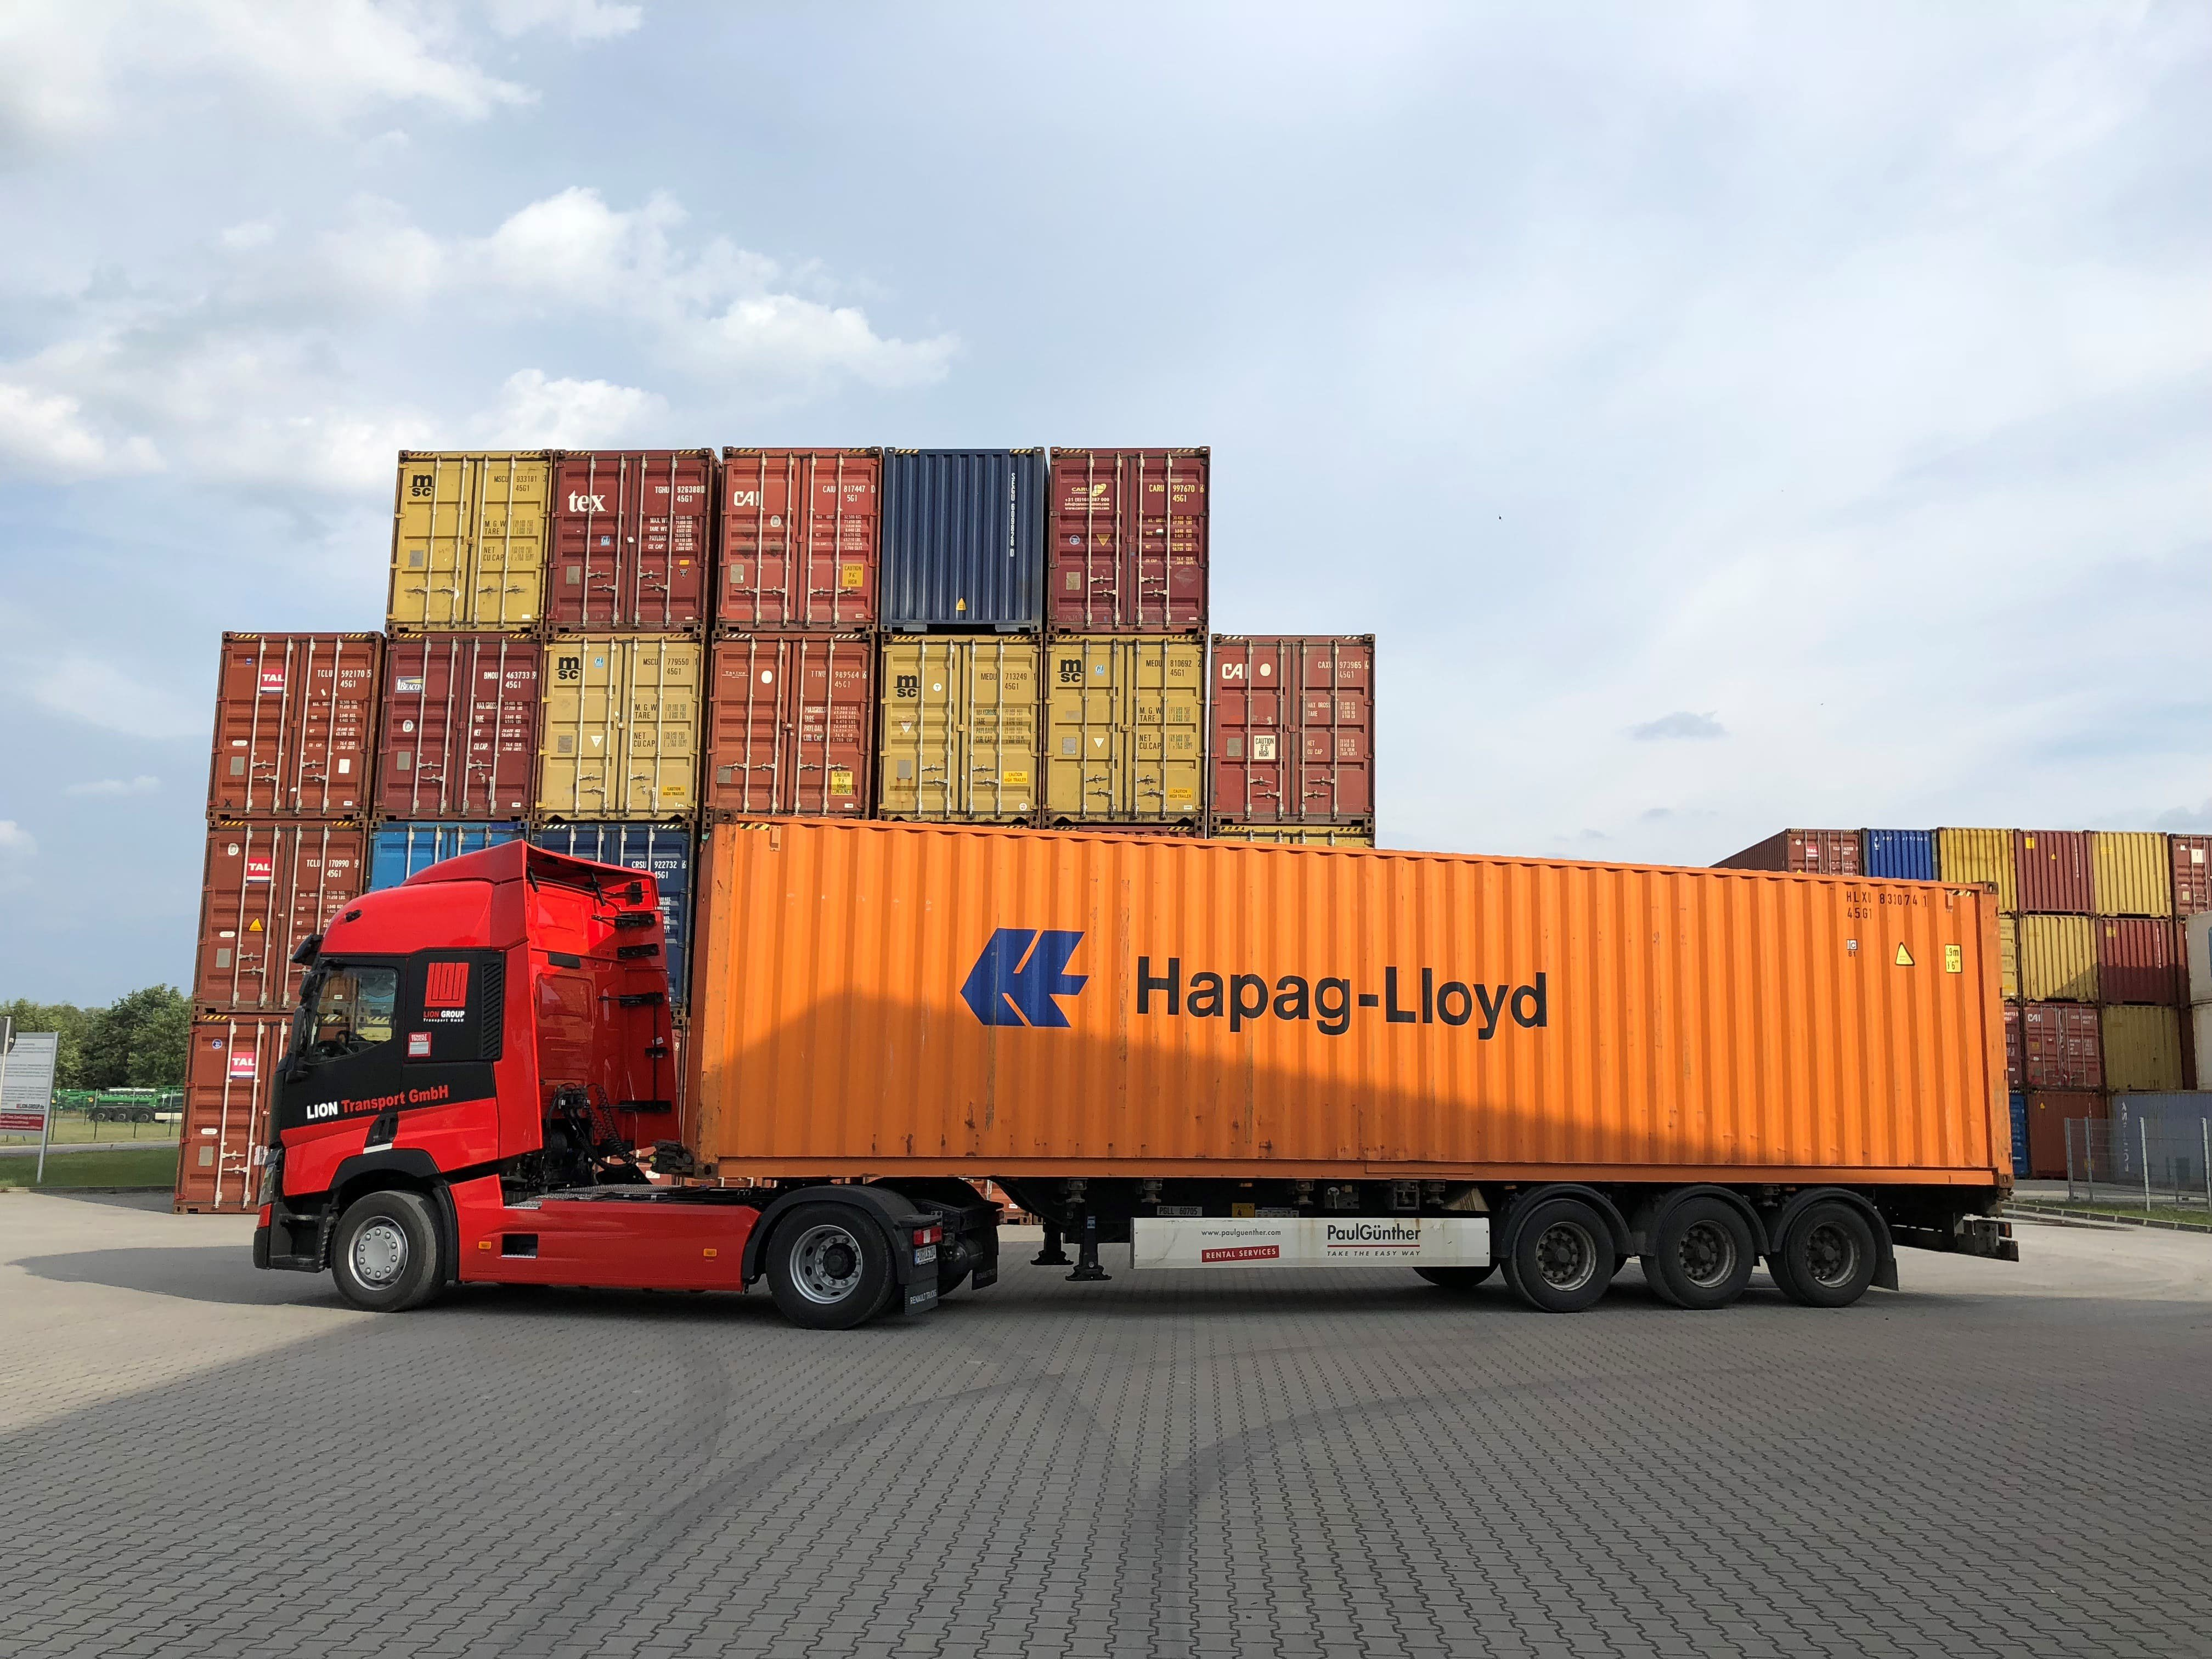 Container transport • Compare prices & freight forwarder